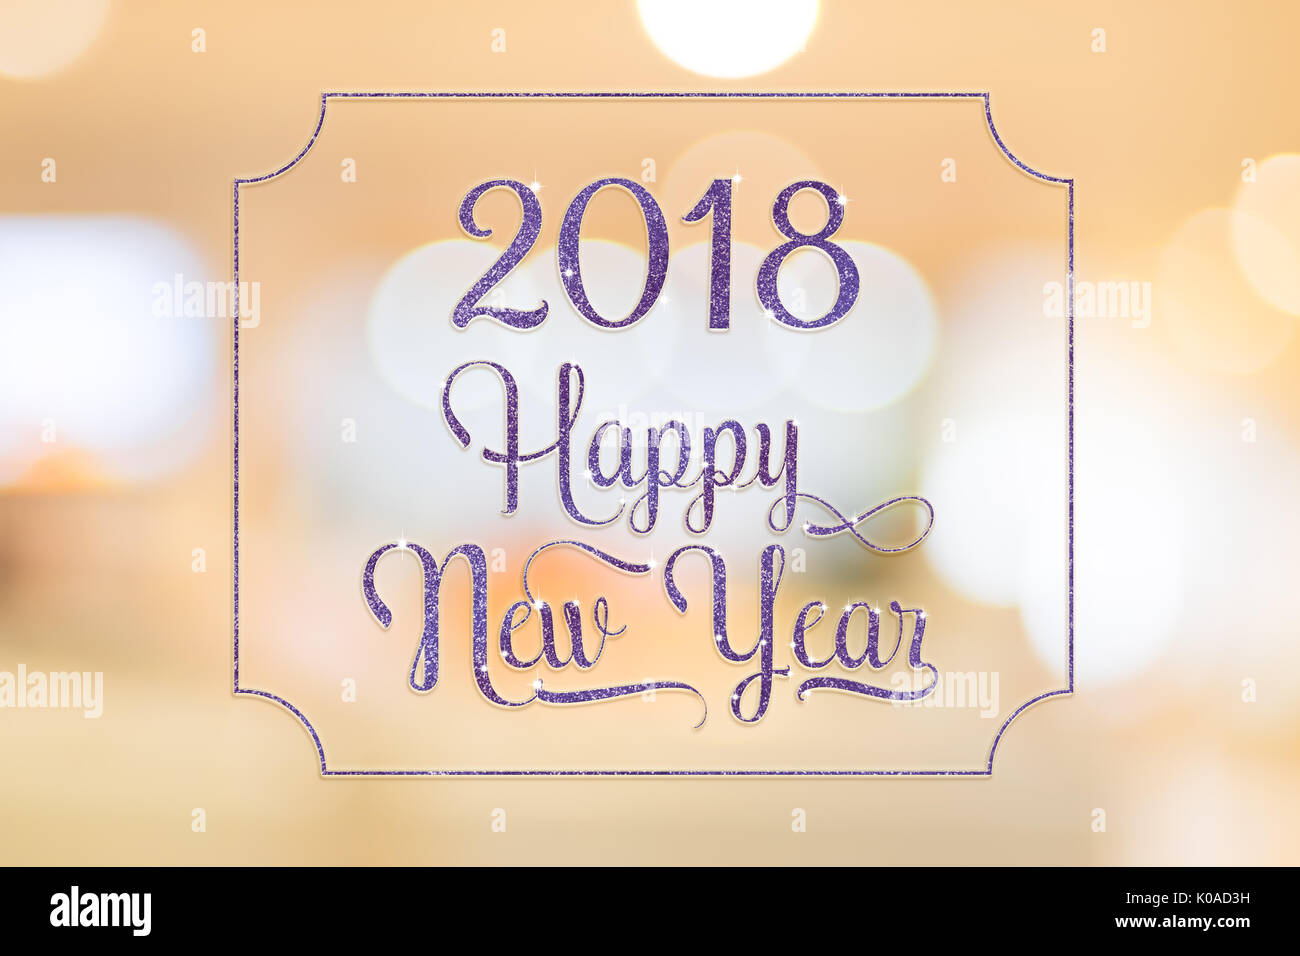 happy new year 2018 purple sparkling glitter word with golden frame at abstract blurred bokeh light background holiday concept